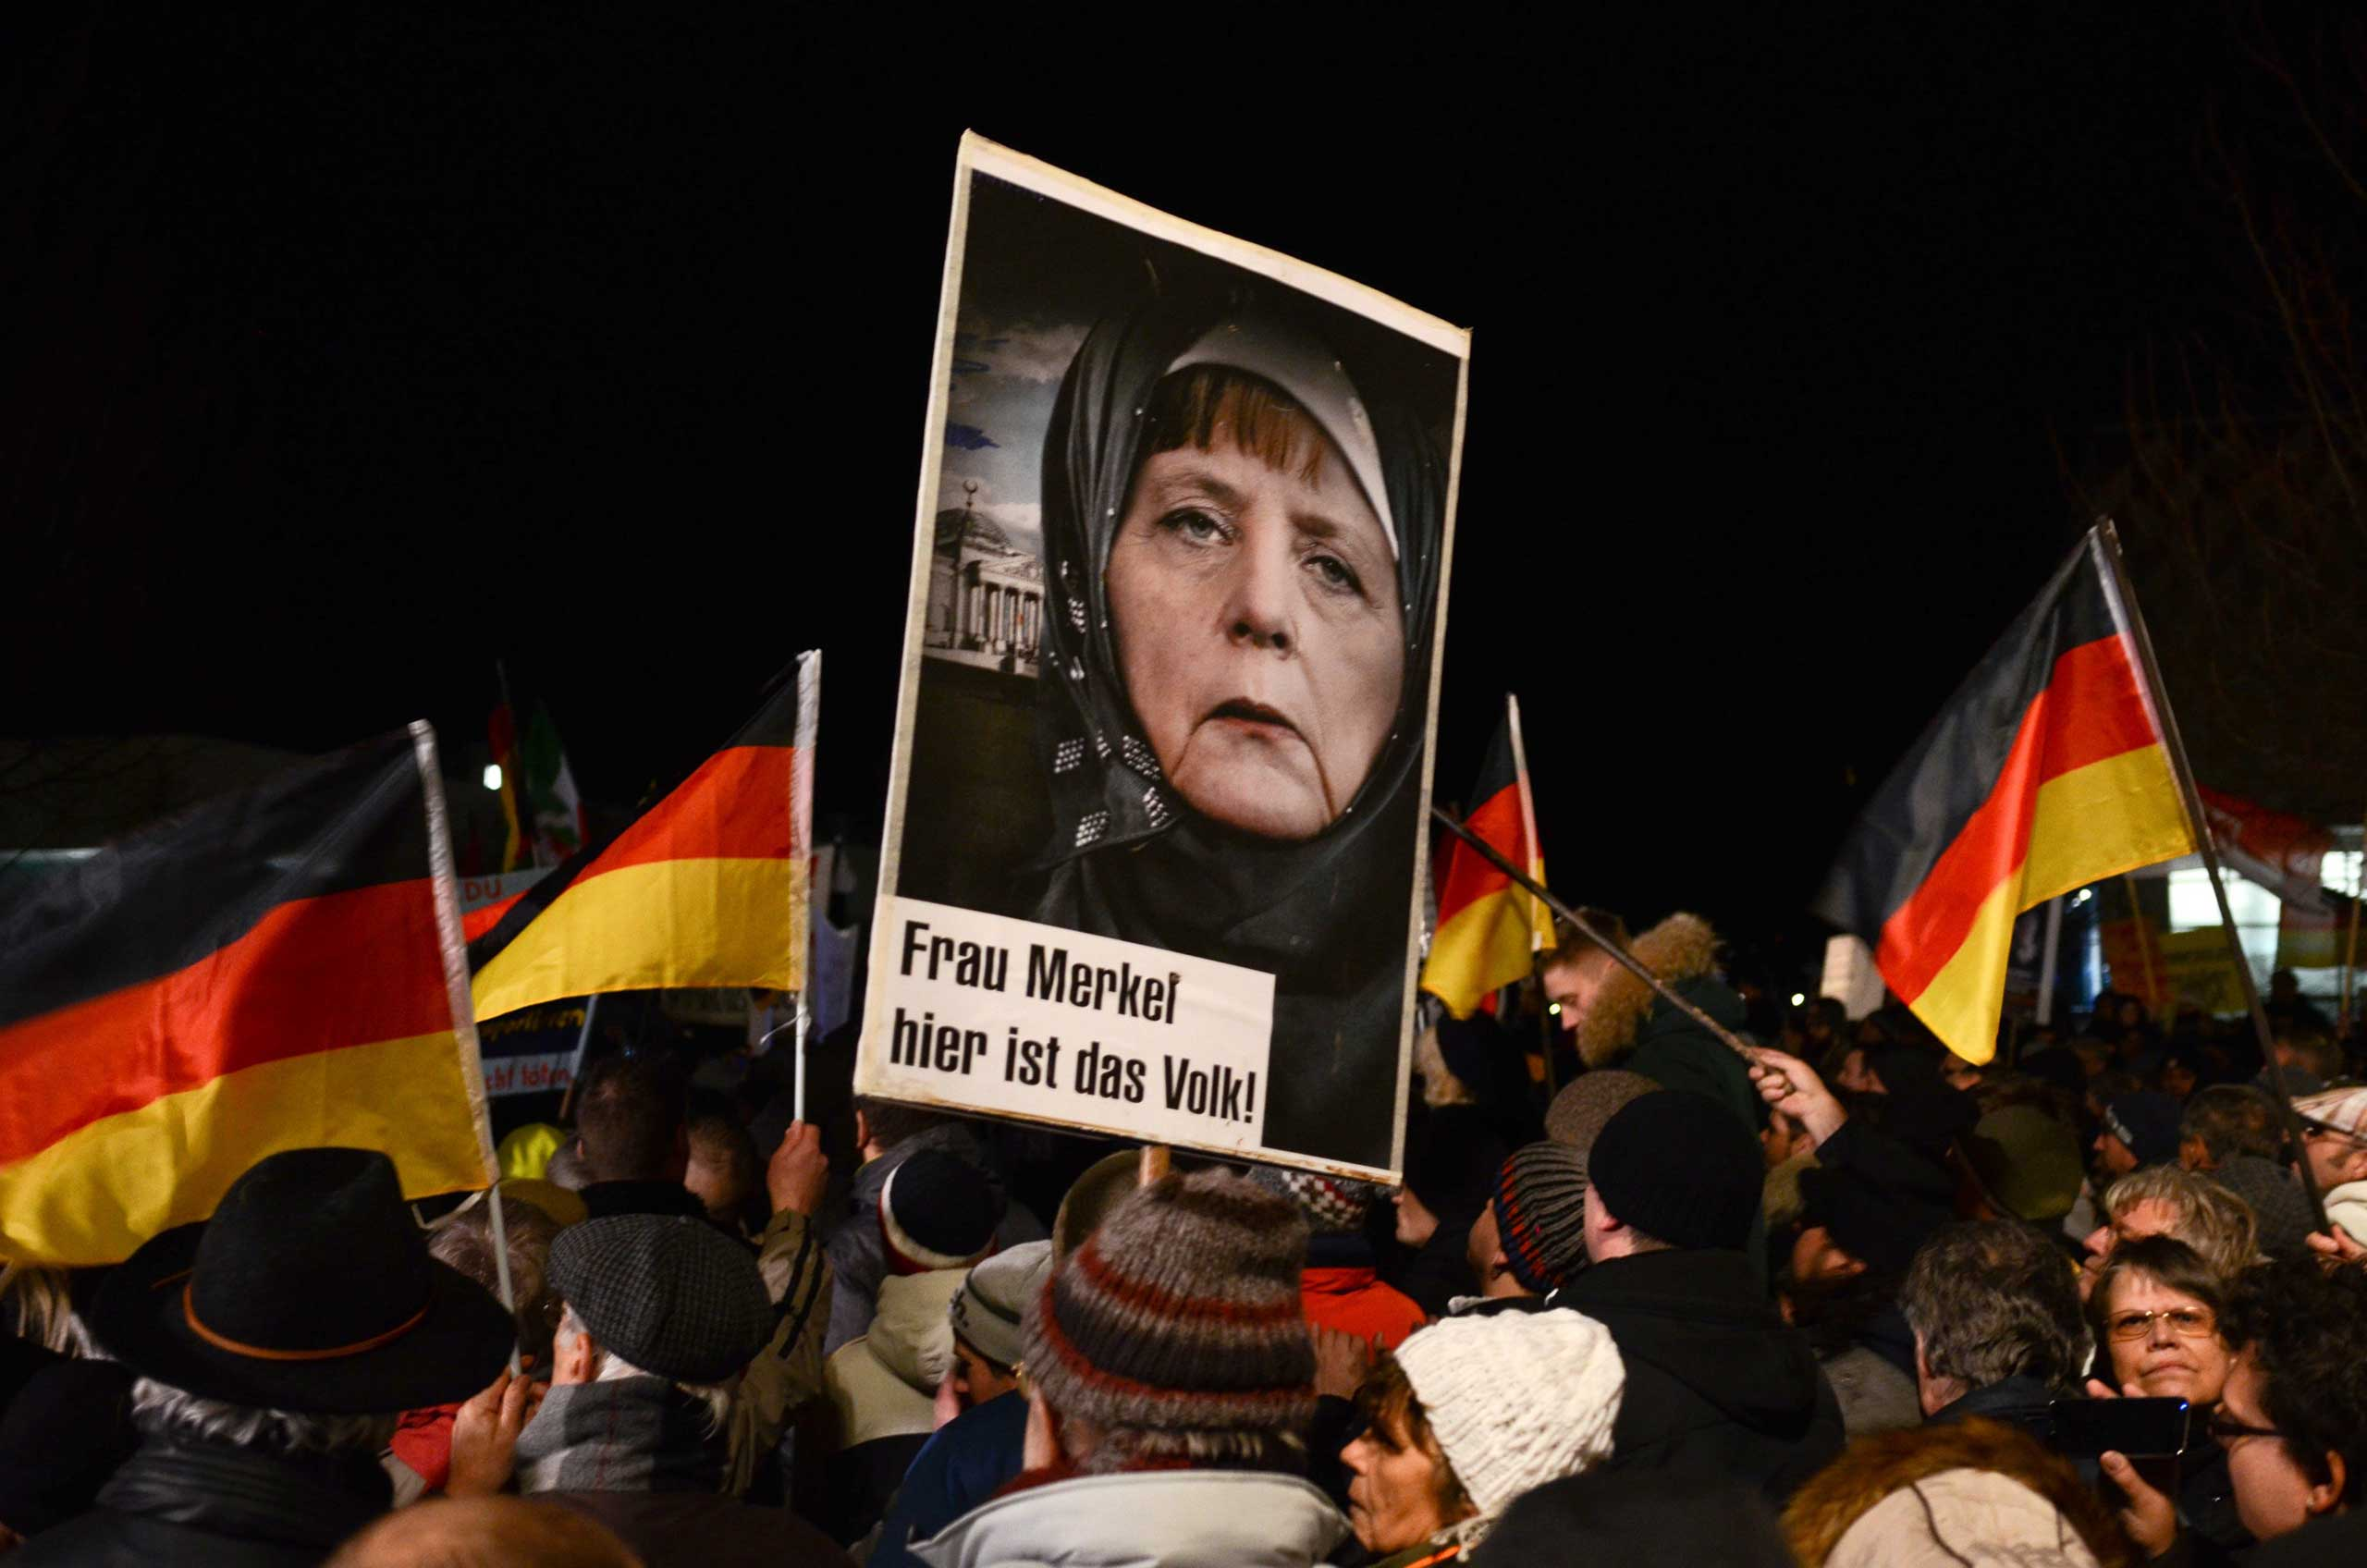 Thousands of PEGIDA (Patriotic Europeans Against the Islamization of the West) supporters march in Dresden, Germany on Jan. 12, 2014.